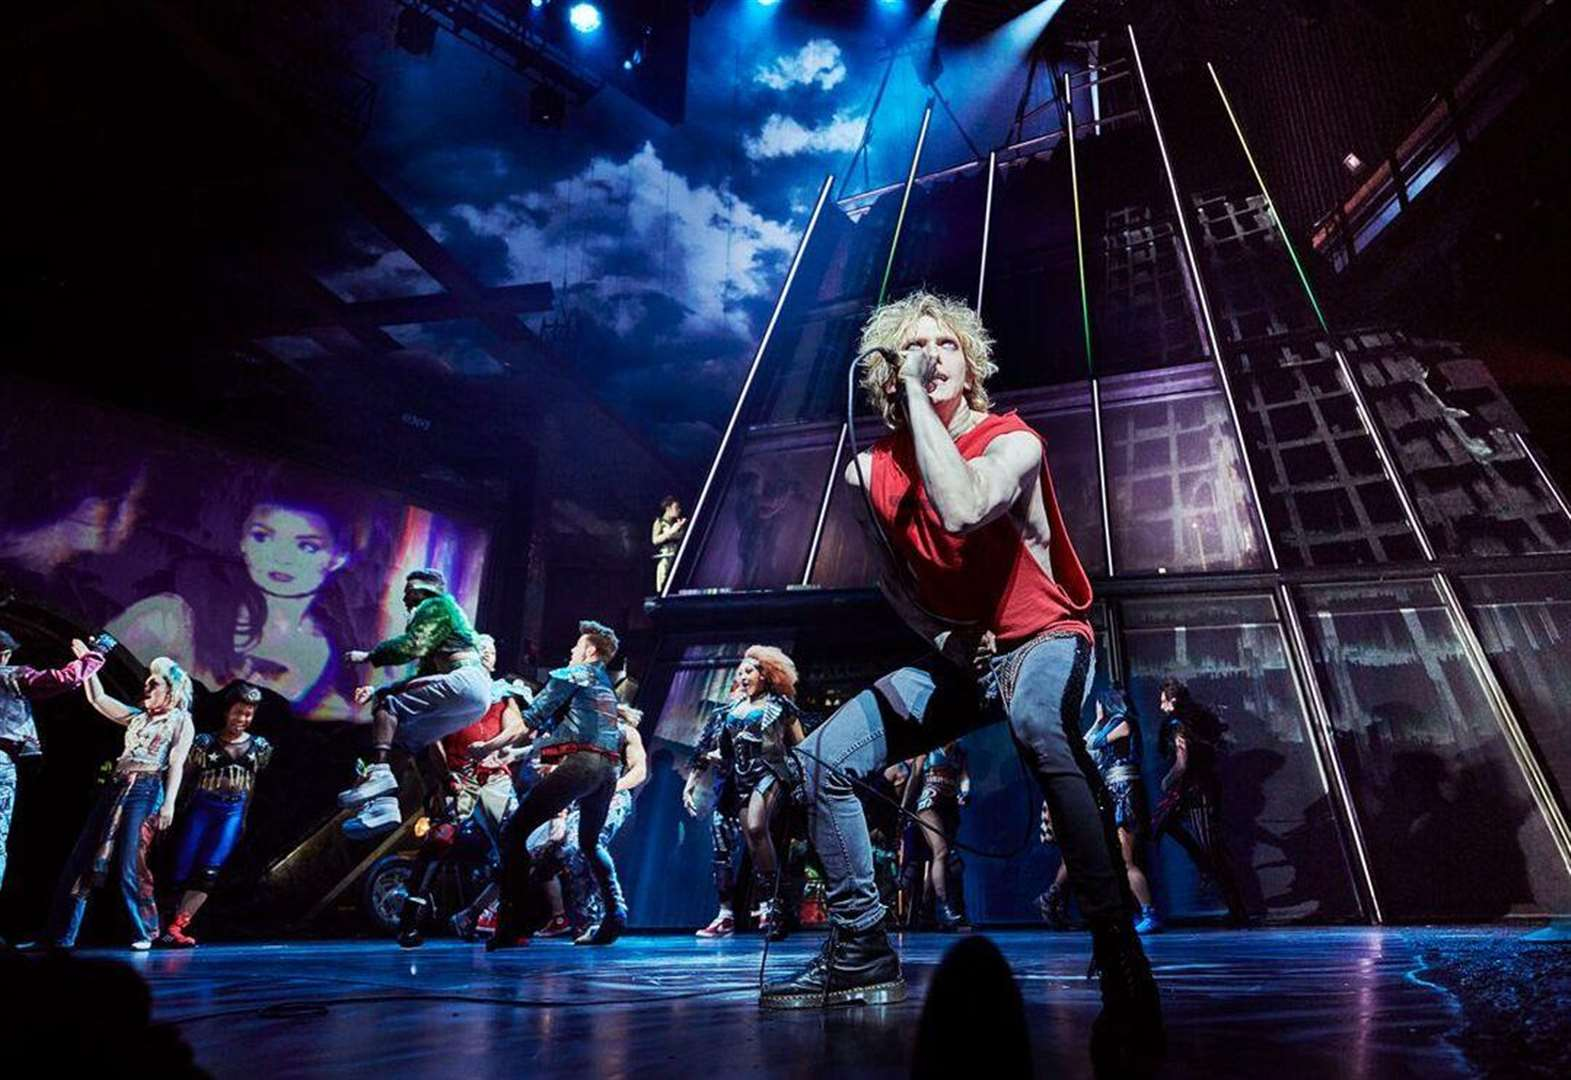 Save money on the biggest events and top West End shows